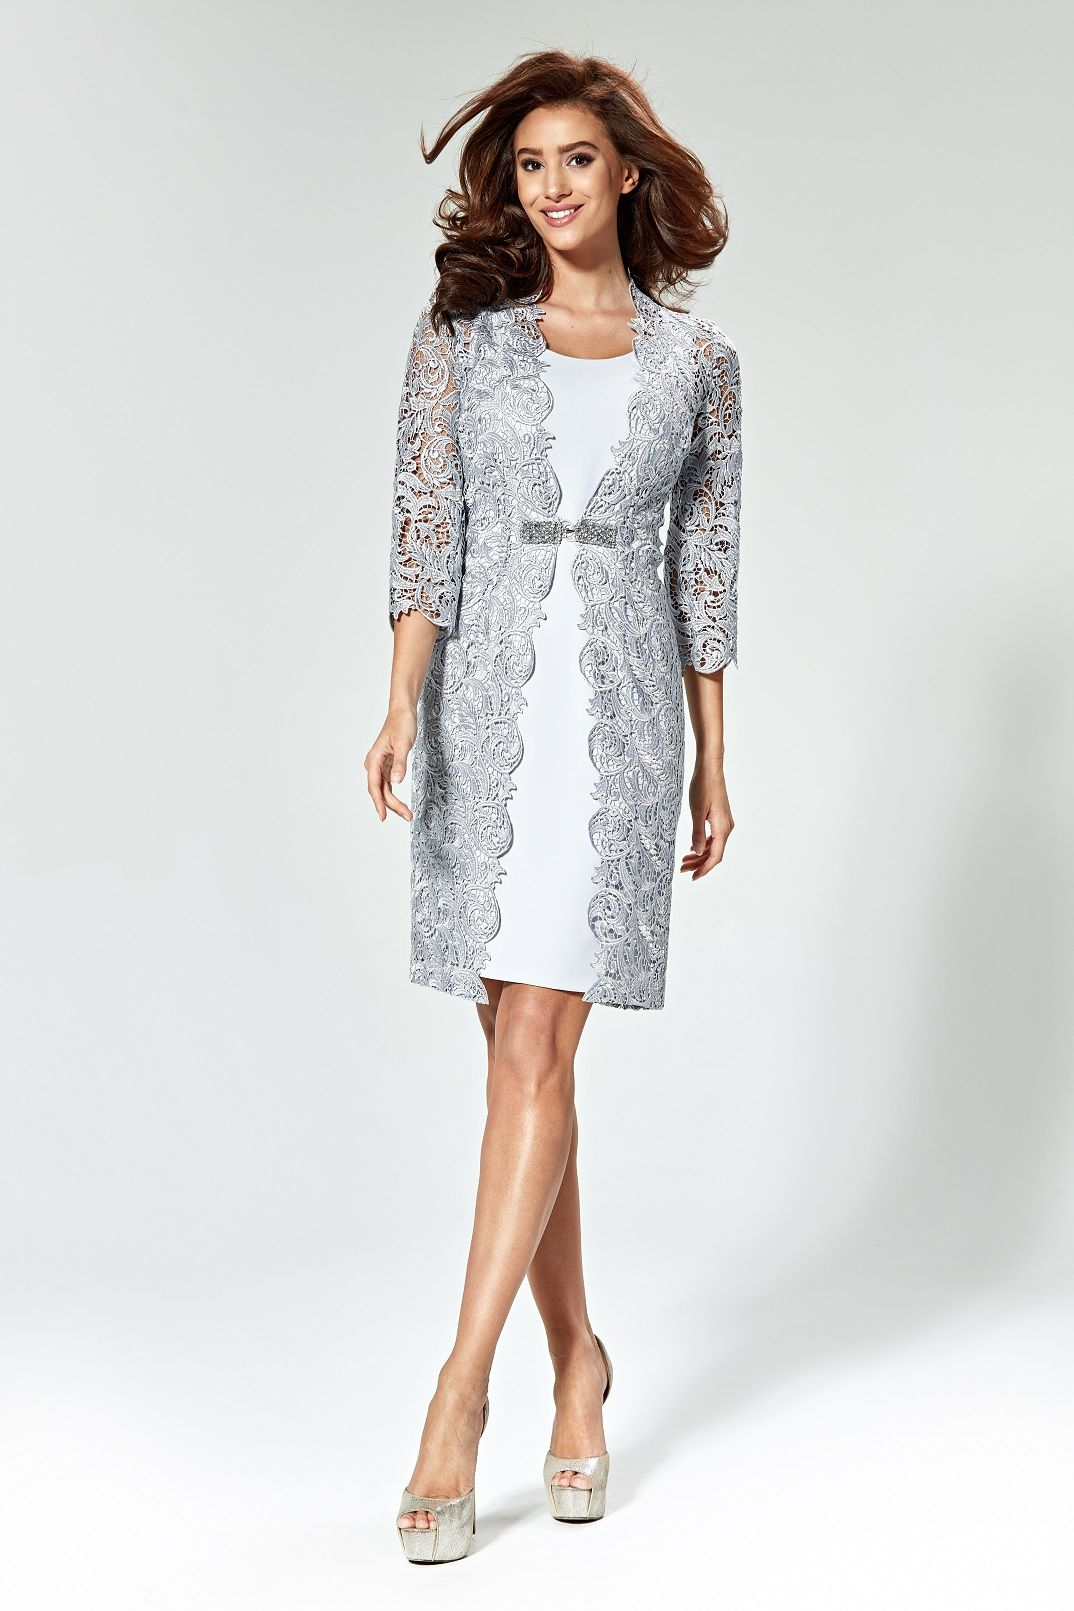 pin auf upcoming trends 2021 - occasion wear